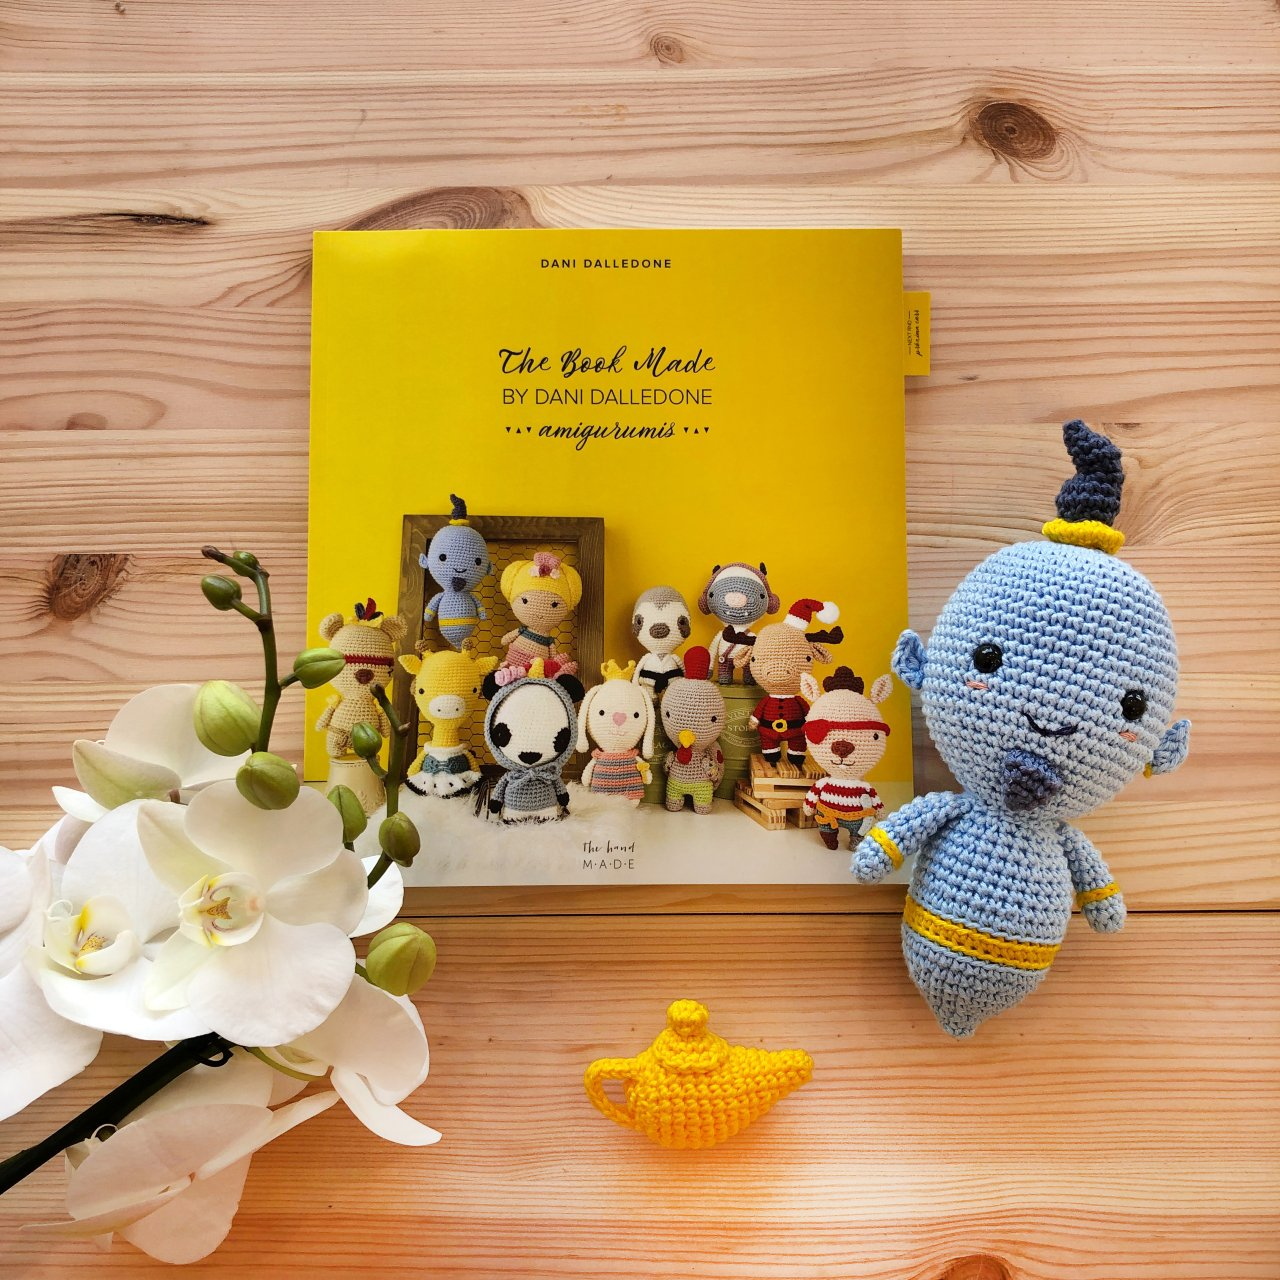 The Book Made - Livro com 11 Amigurumis By Dani Dalledone